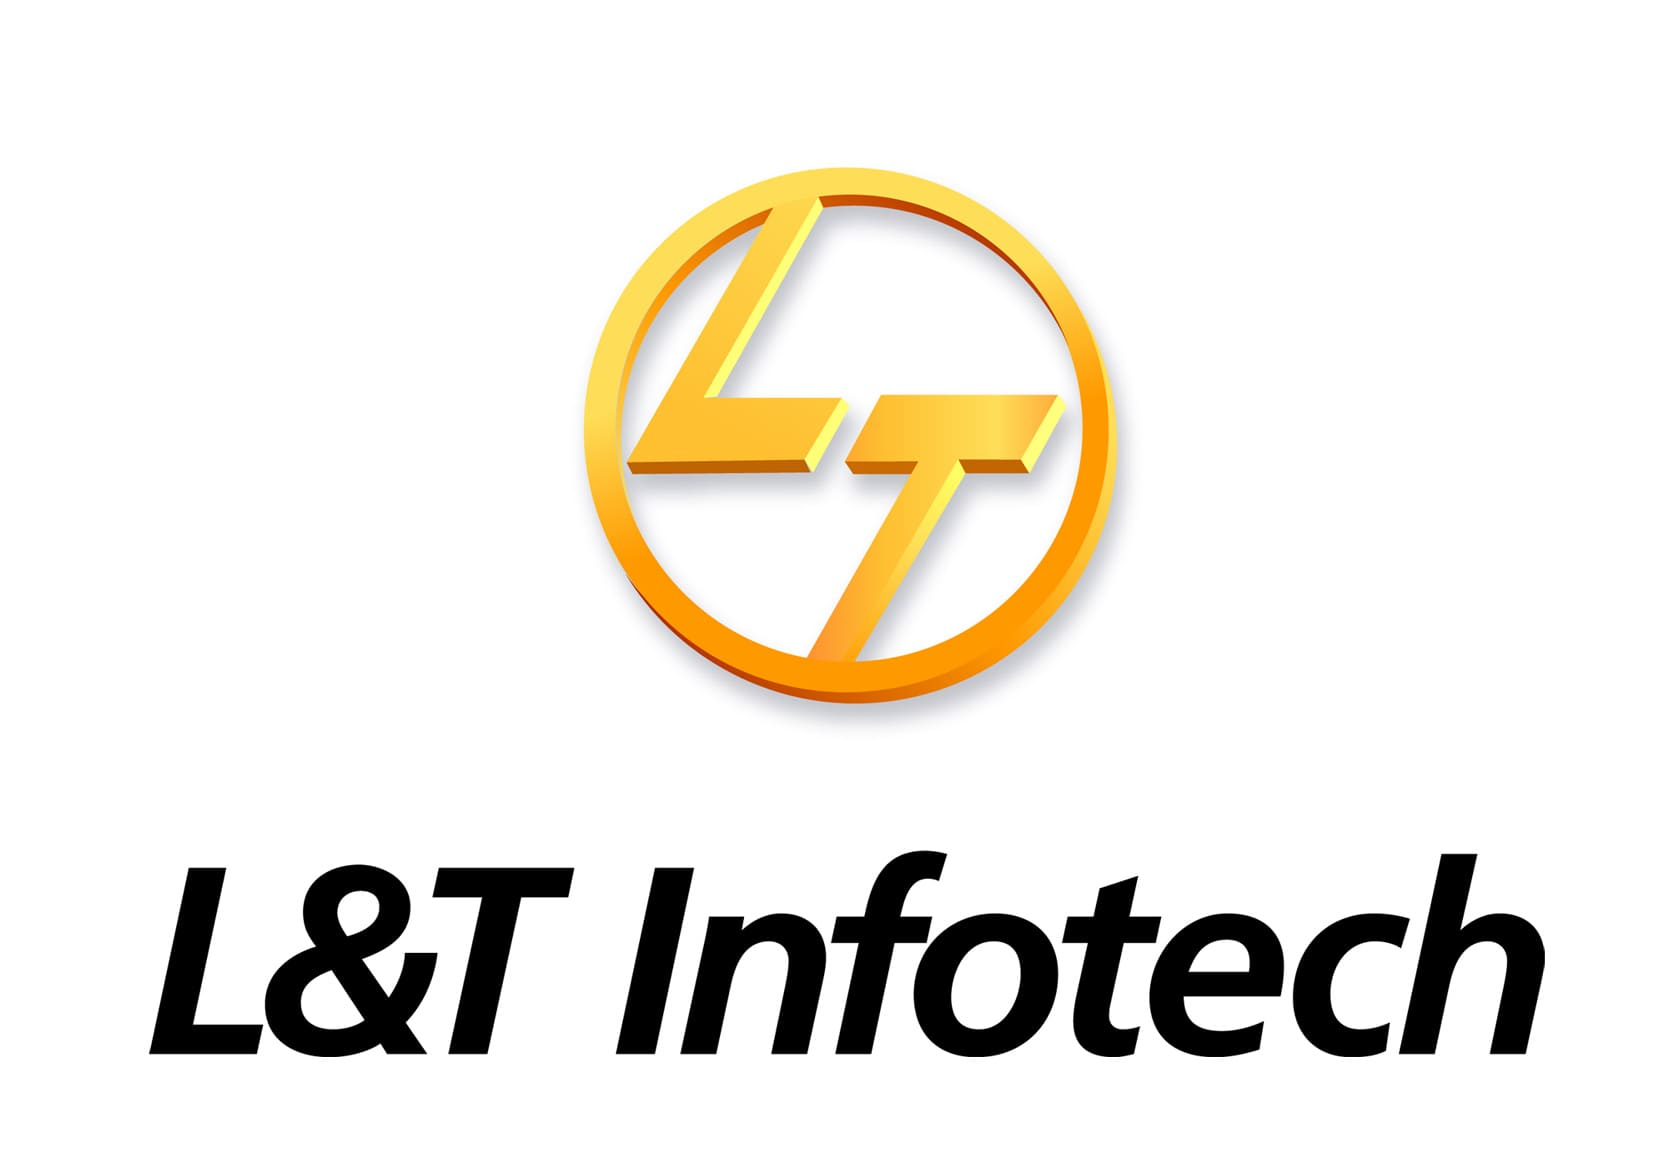 L&T Infotech Recruitment 2020 | Service Desk Analyst | Any Degree